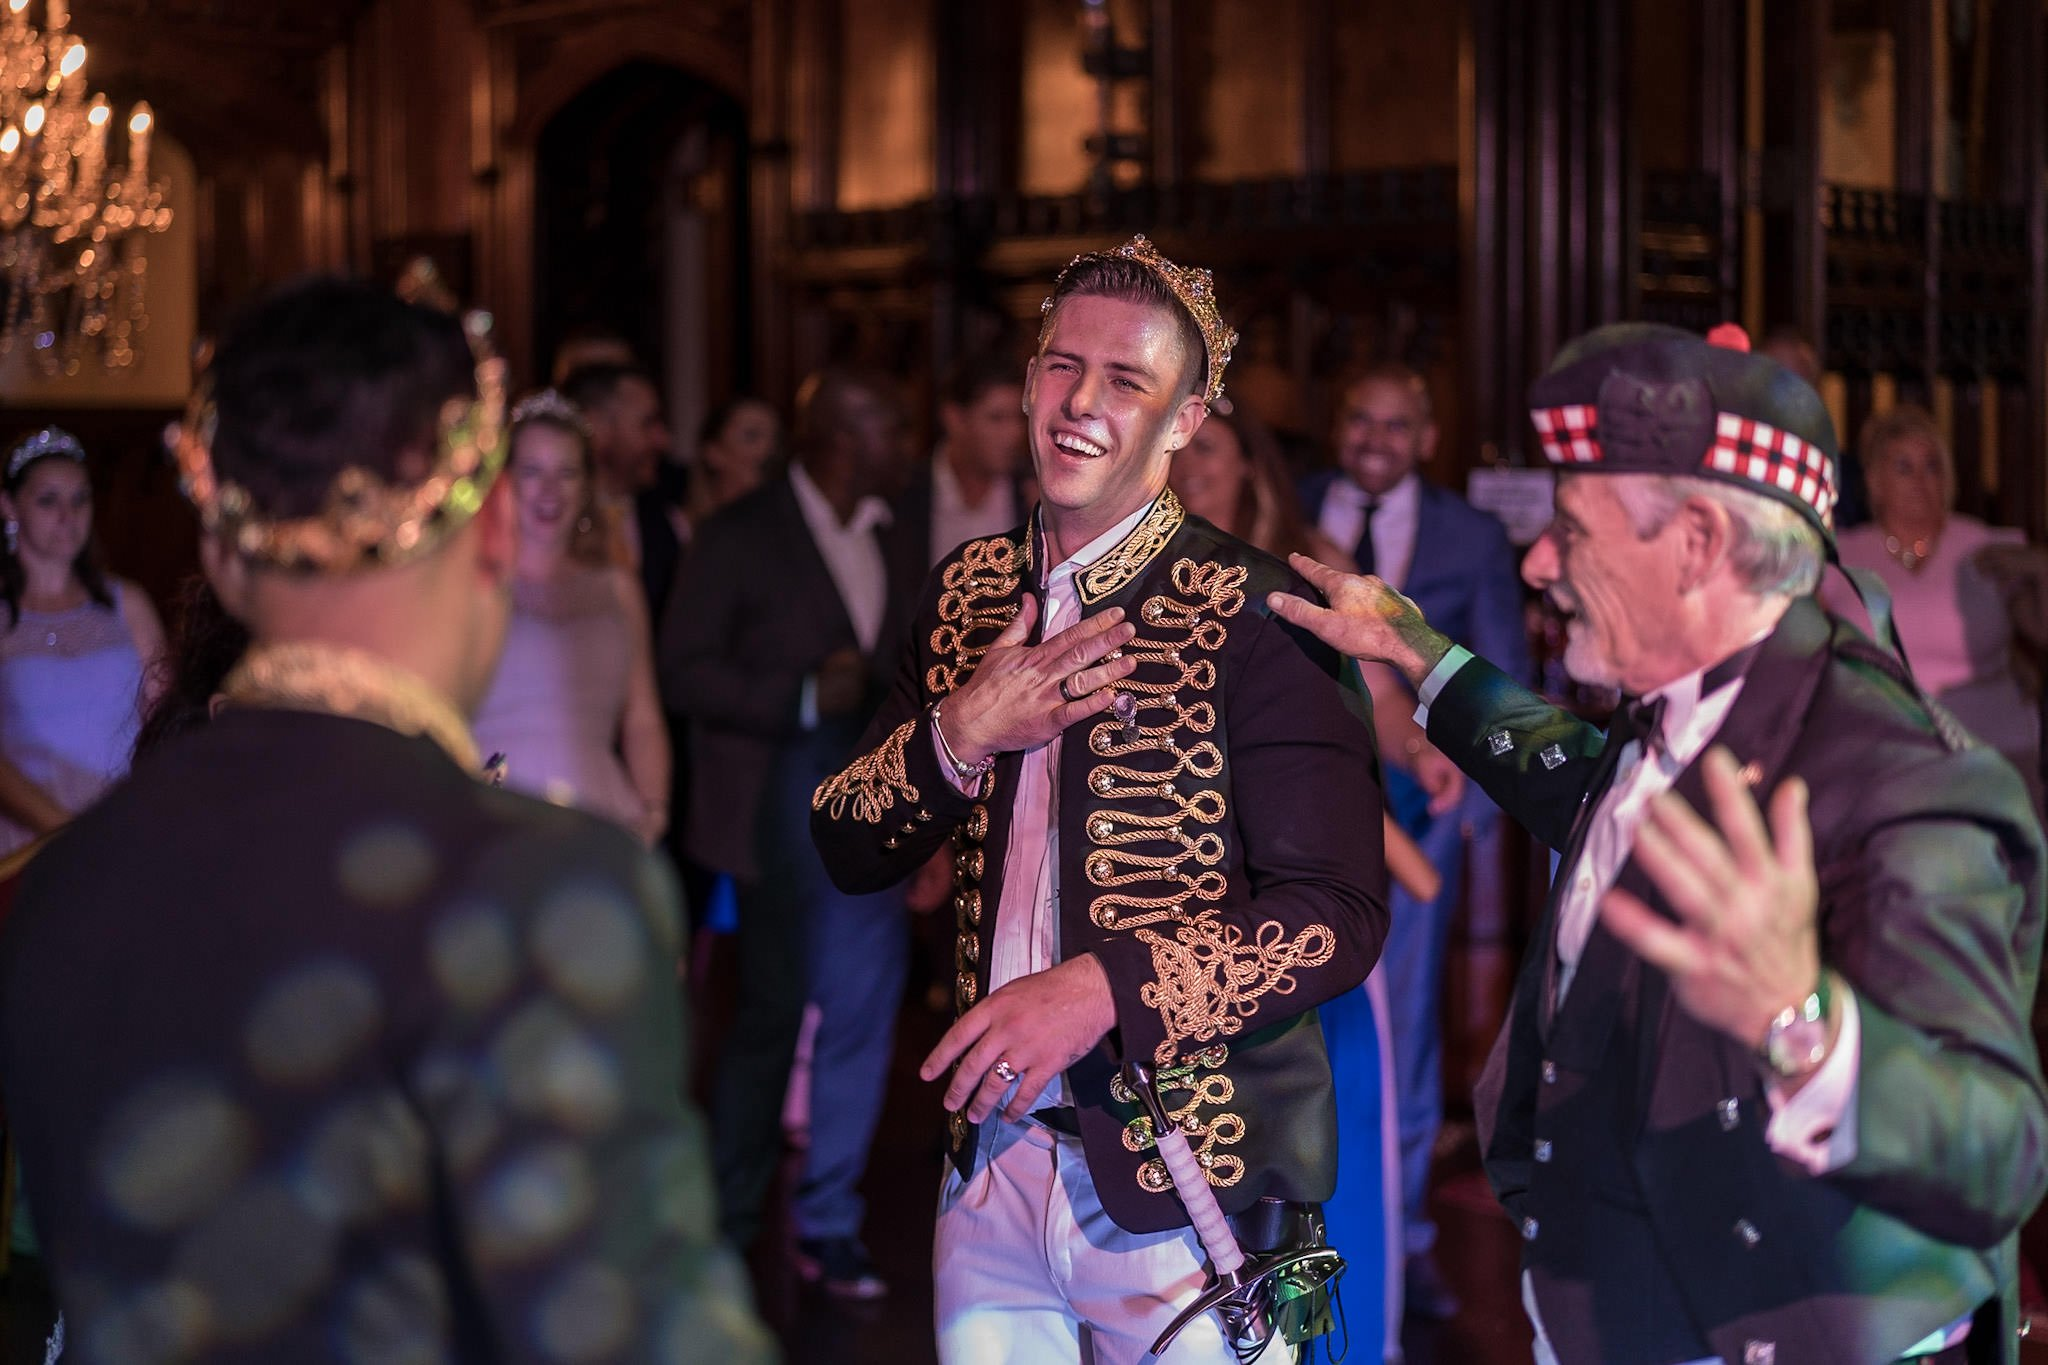 Allerton Castle Knaresborough Hutchinson Weddings Photography Groom laughing with his father during dancing in the great hall